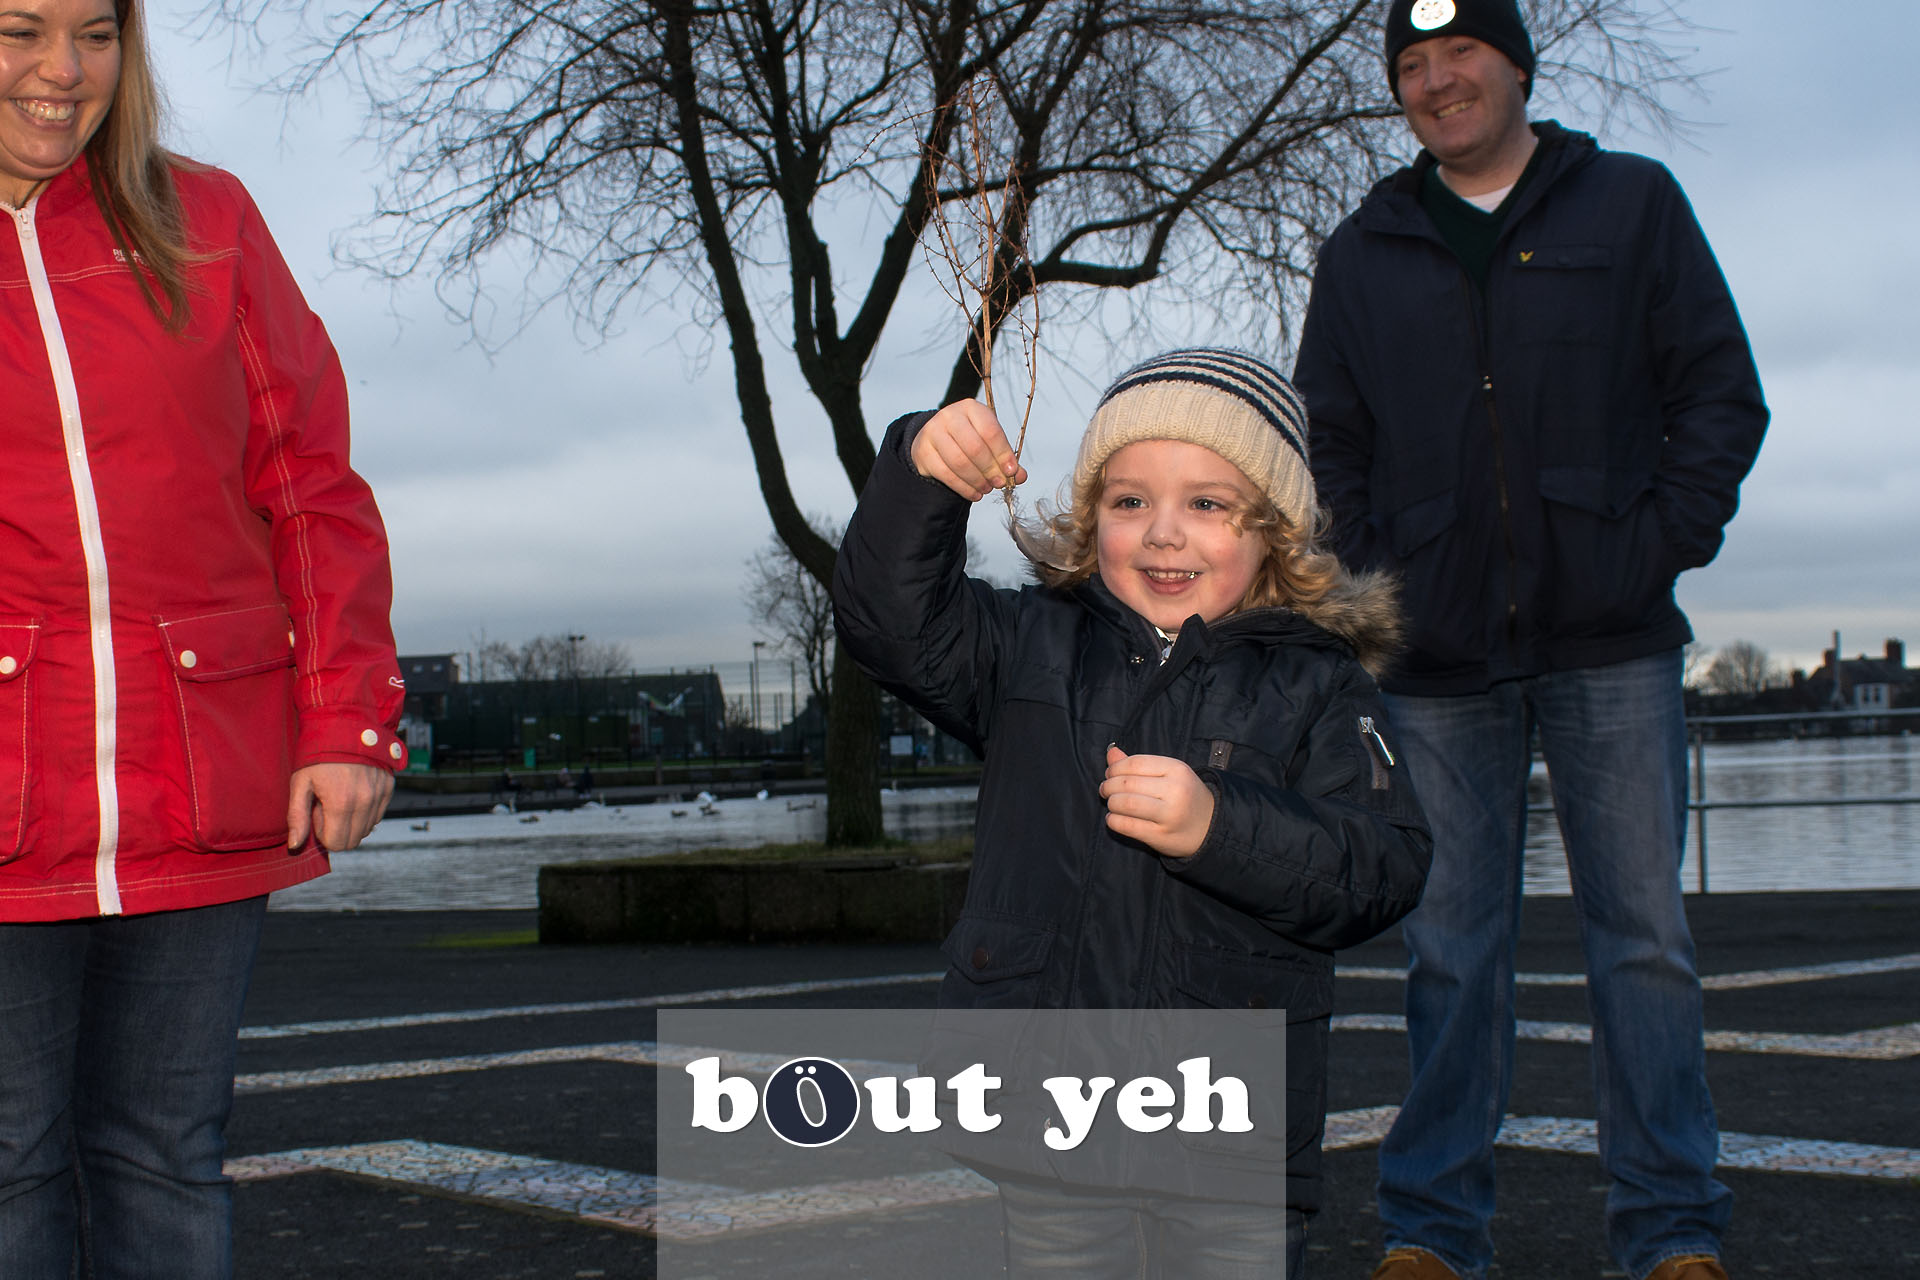 Young boy with parents, Waterworks, Belfast, Northern Ireland - bout yeh photographers Belfast photo 3960.